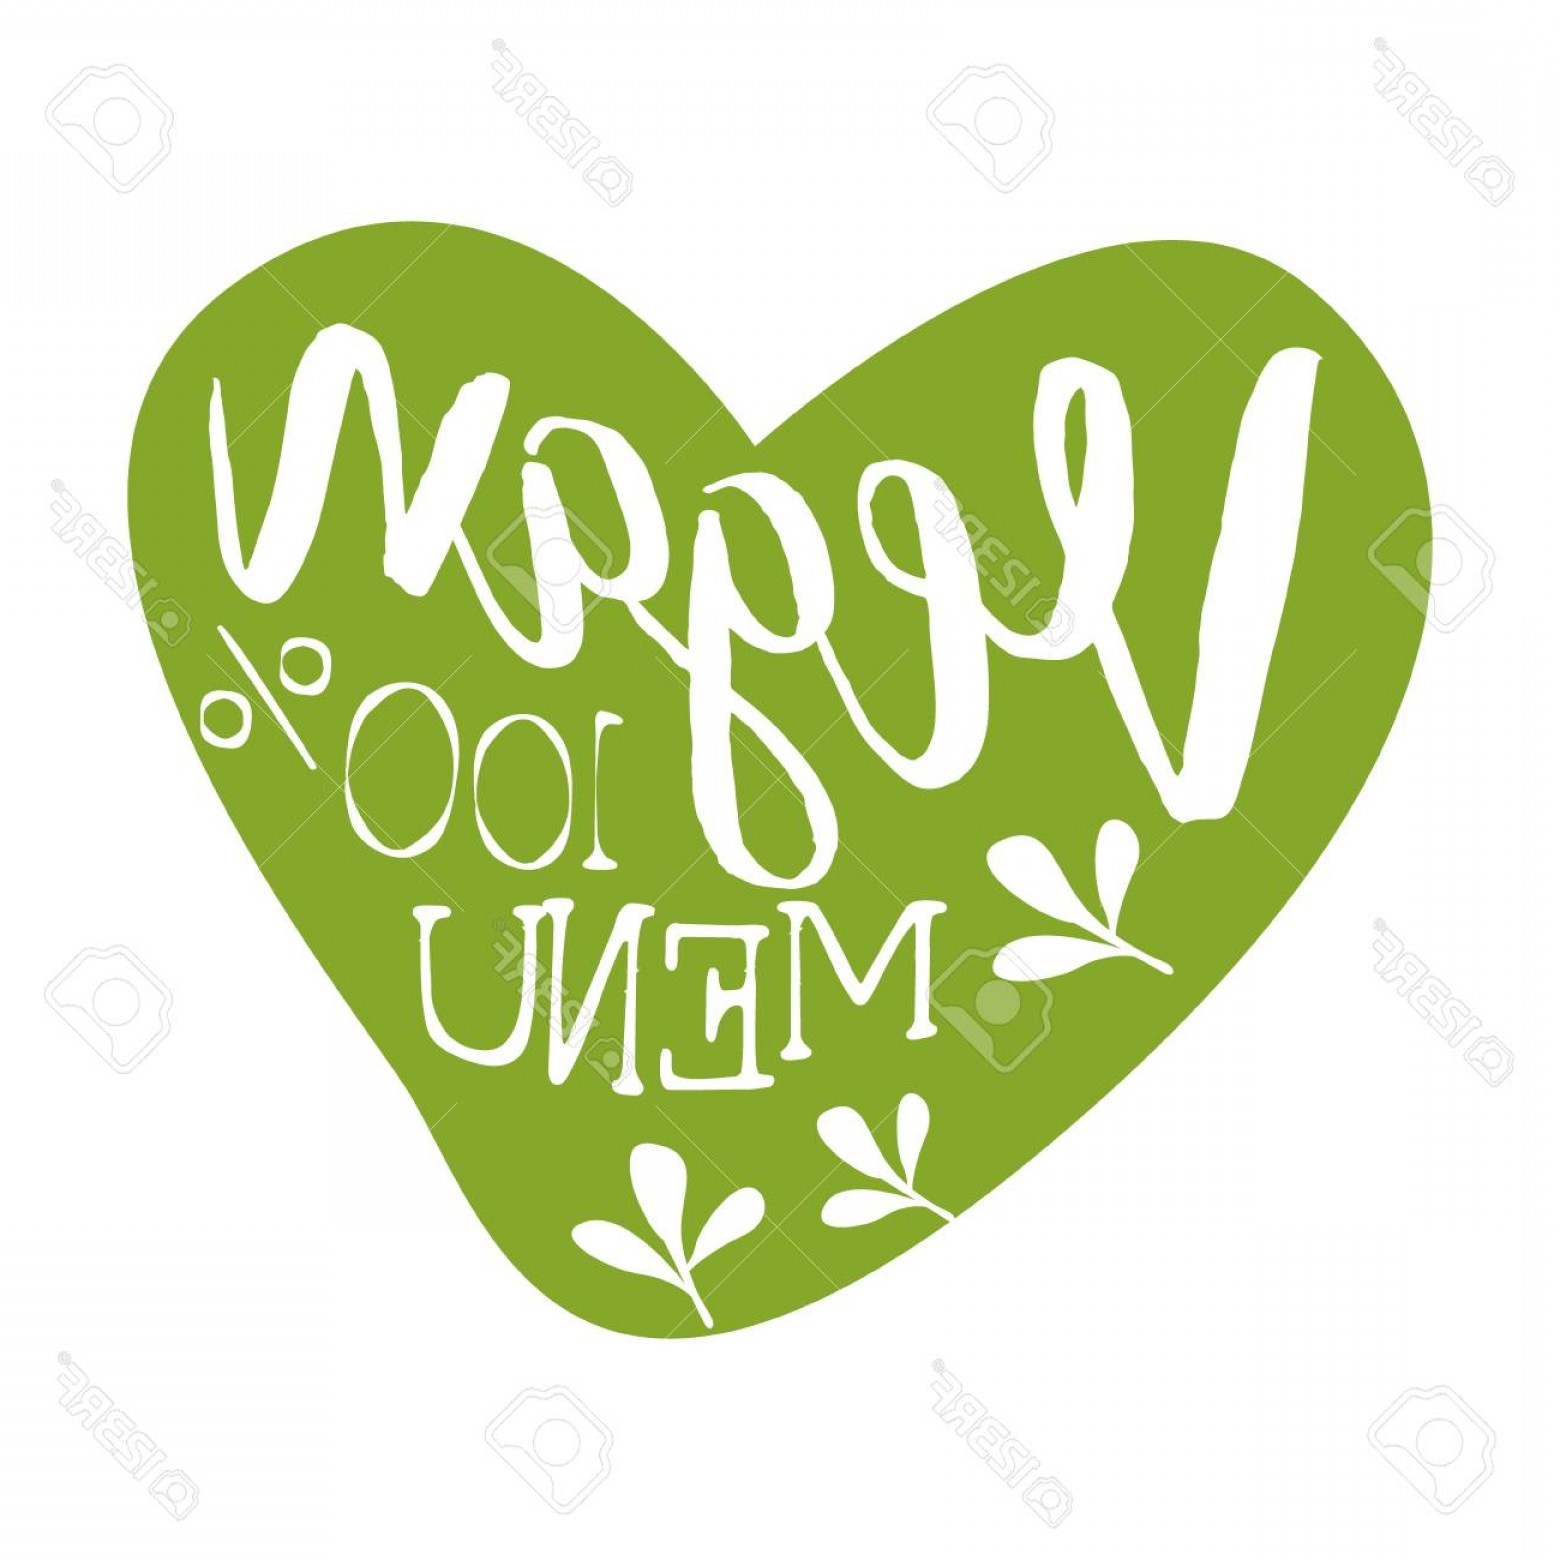 Vegan Heart Vectors: Photostock Vector Vegan Menu Green Label In The Shape Of A Heart Vector Illustration